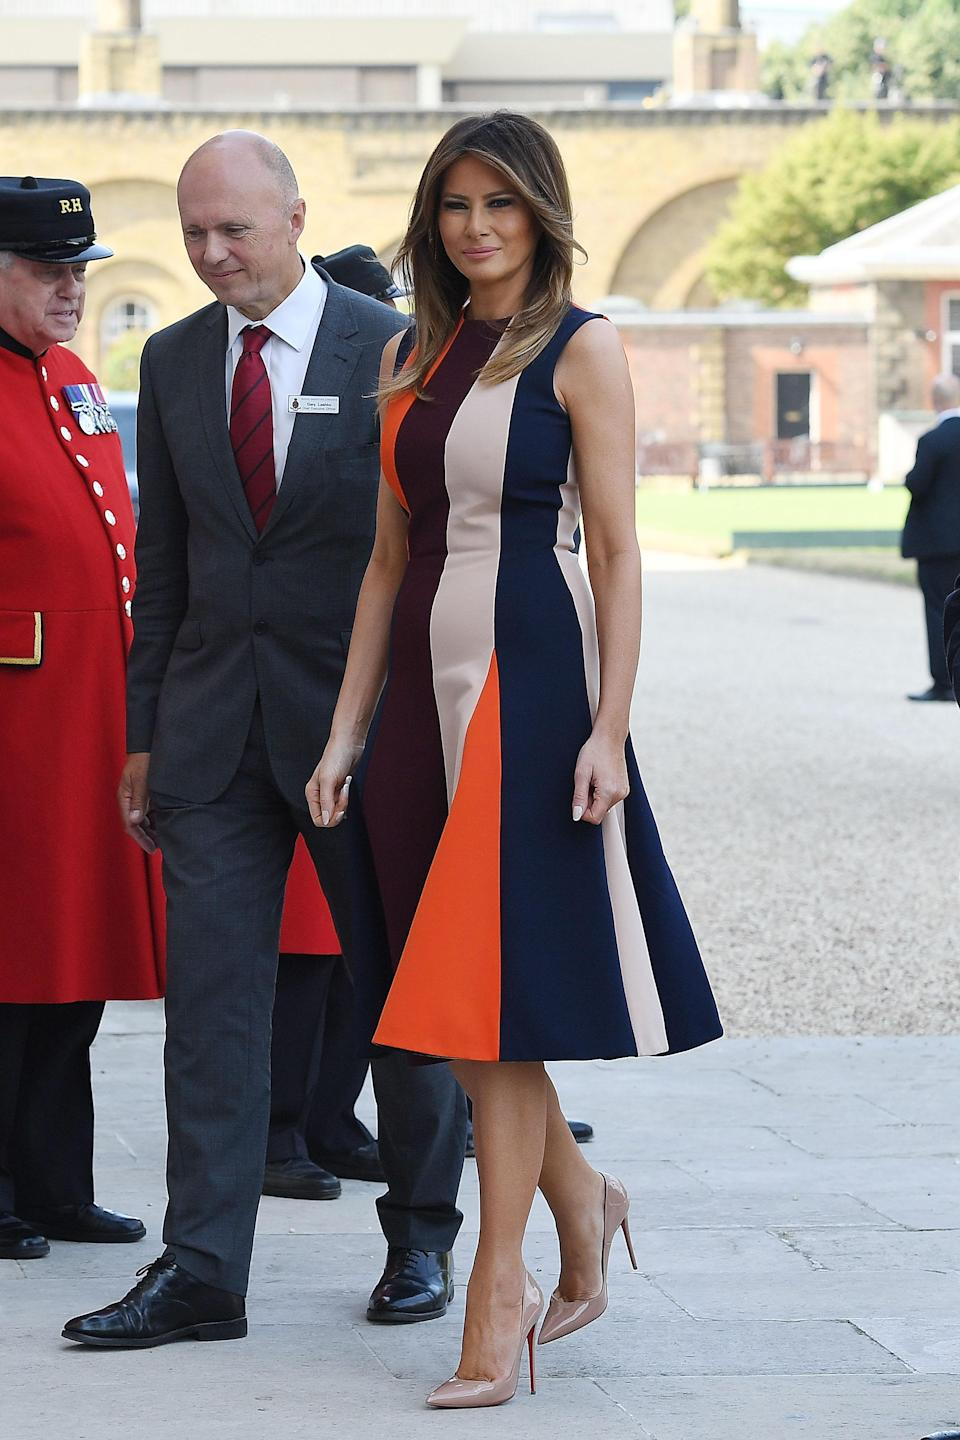 The first lady gave the British fashion a nod by wearing a Victoria Beckham dress. (Photo: Leon Neal/Getty Images)